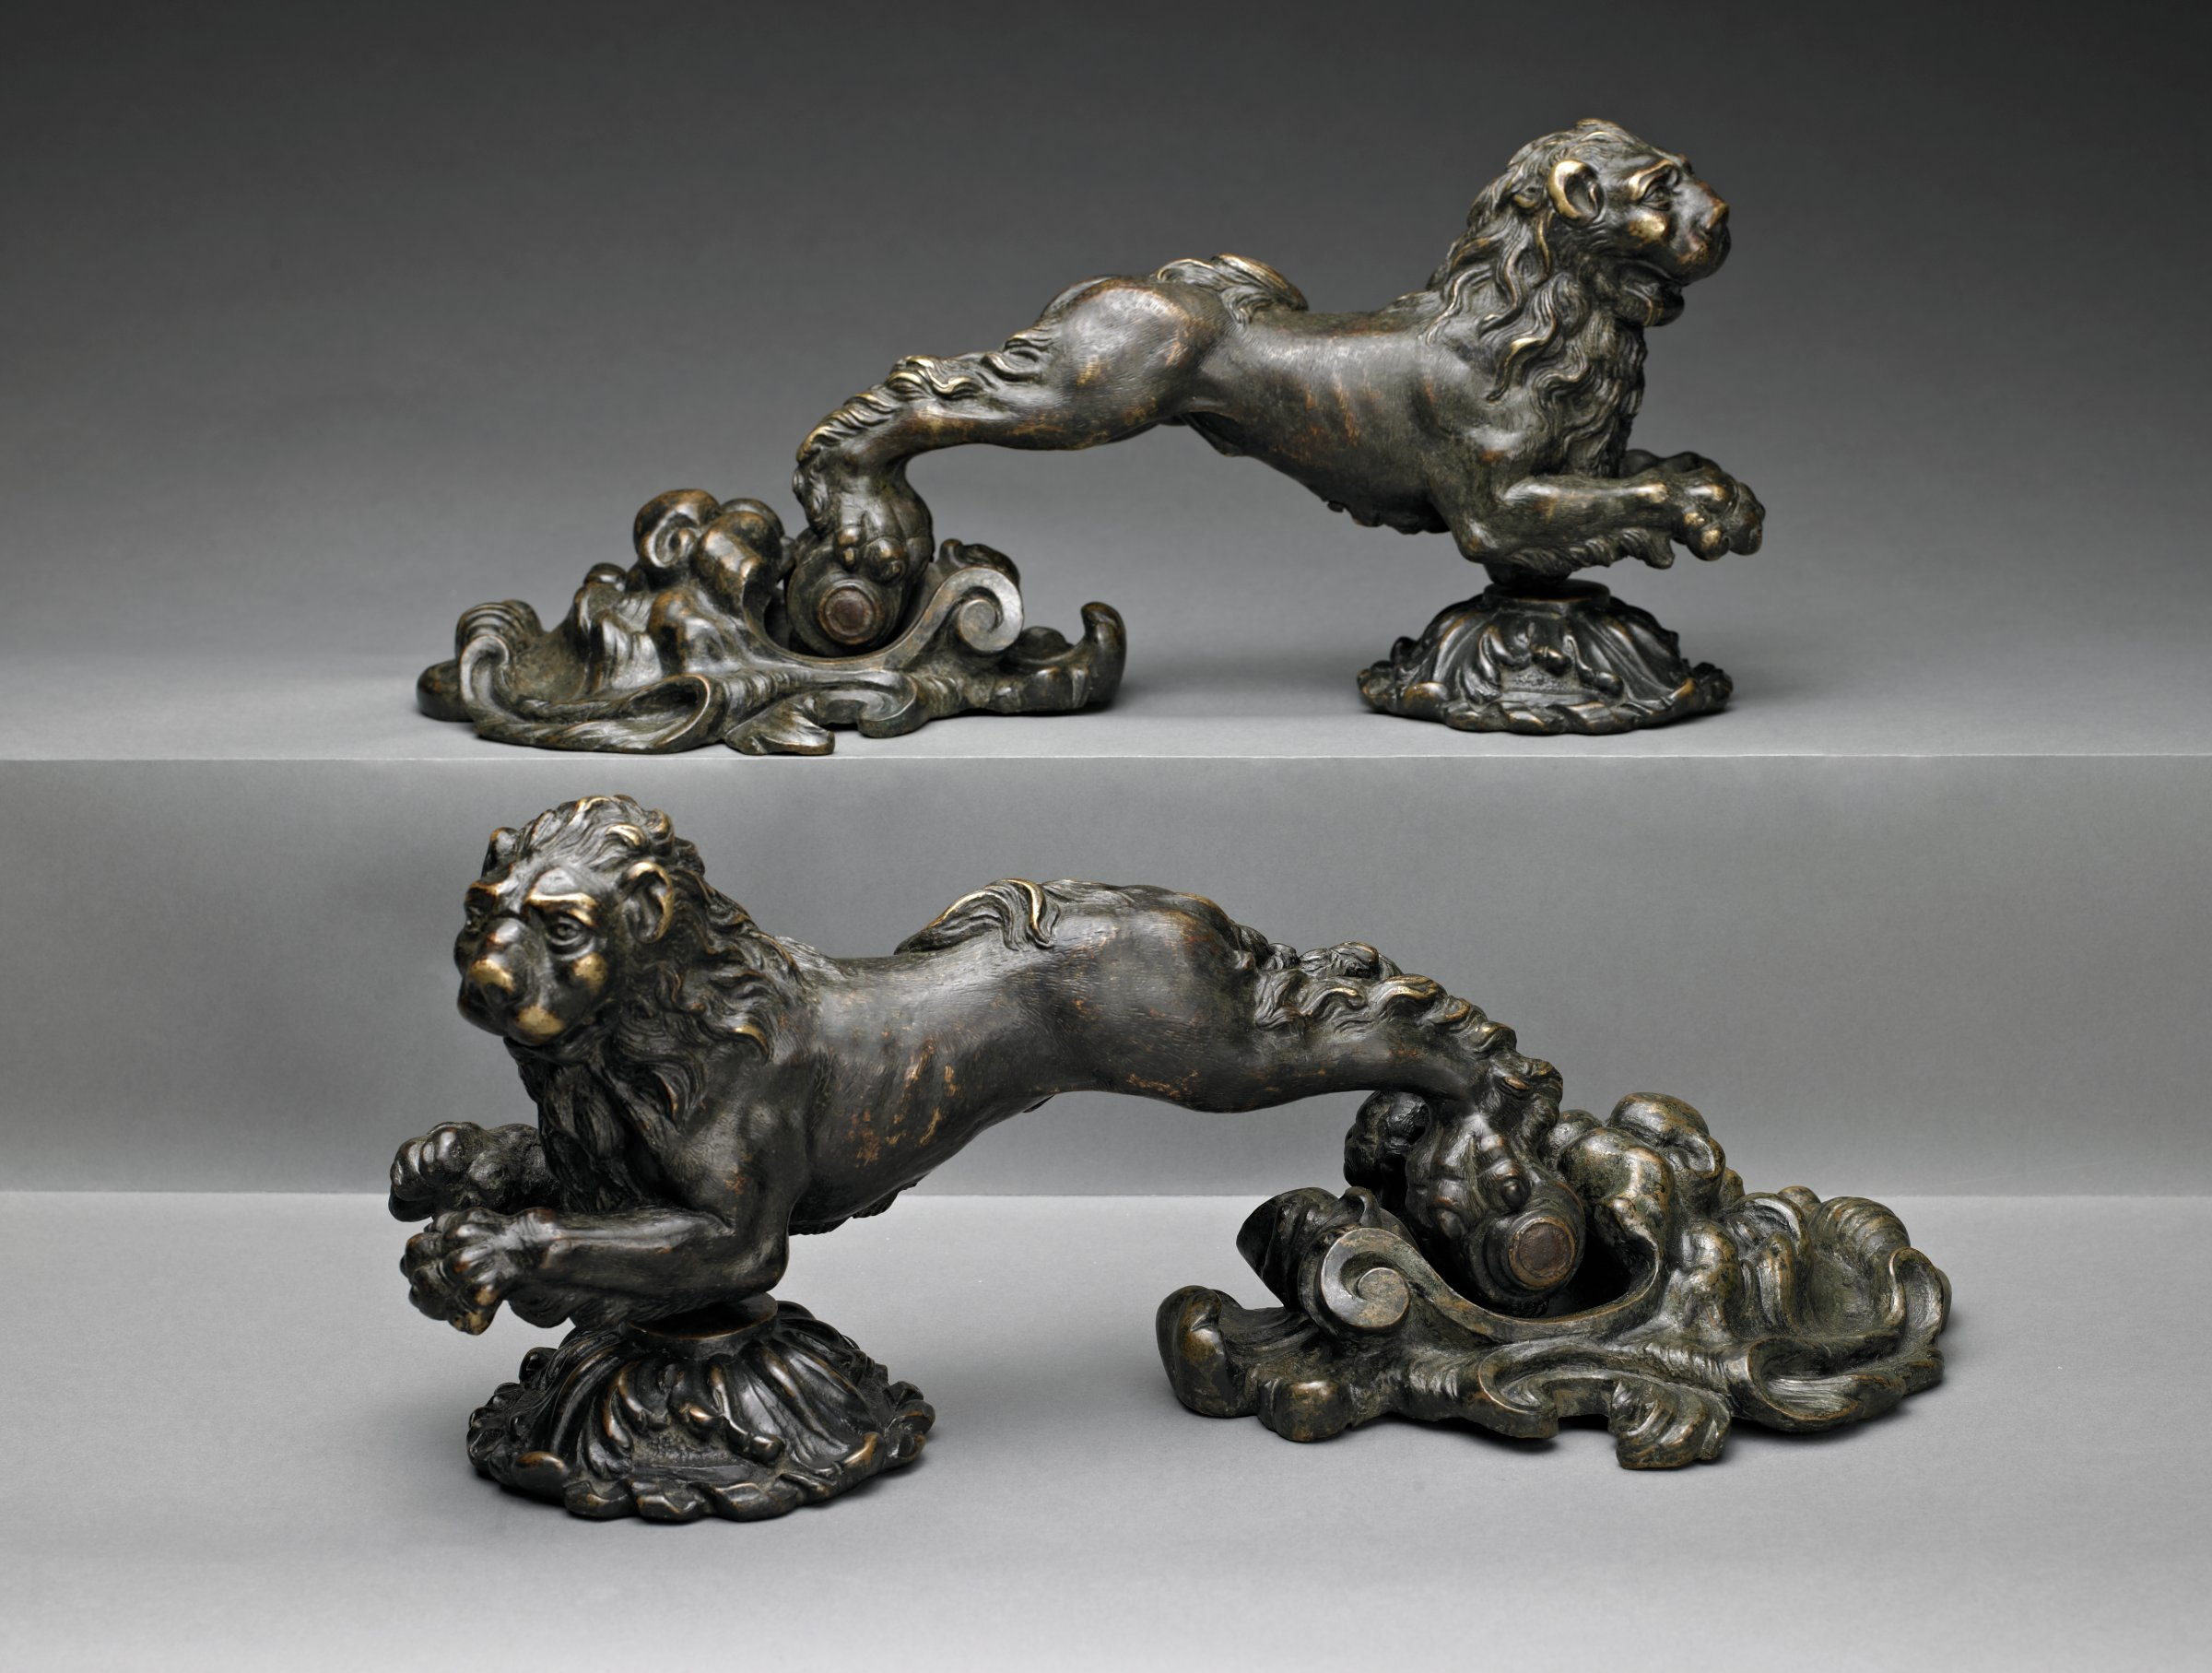 Cast and chased bronze door knockers in the form of lions